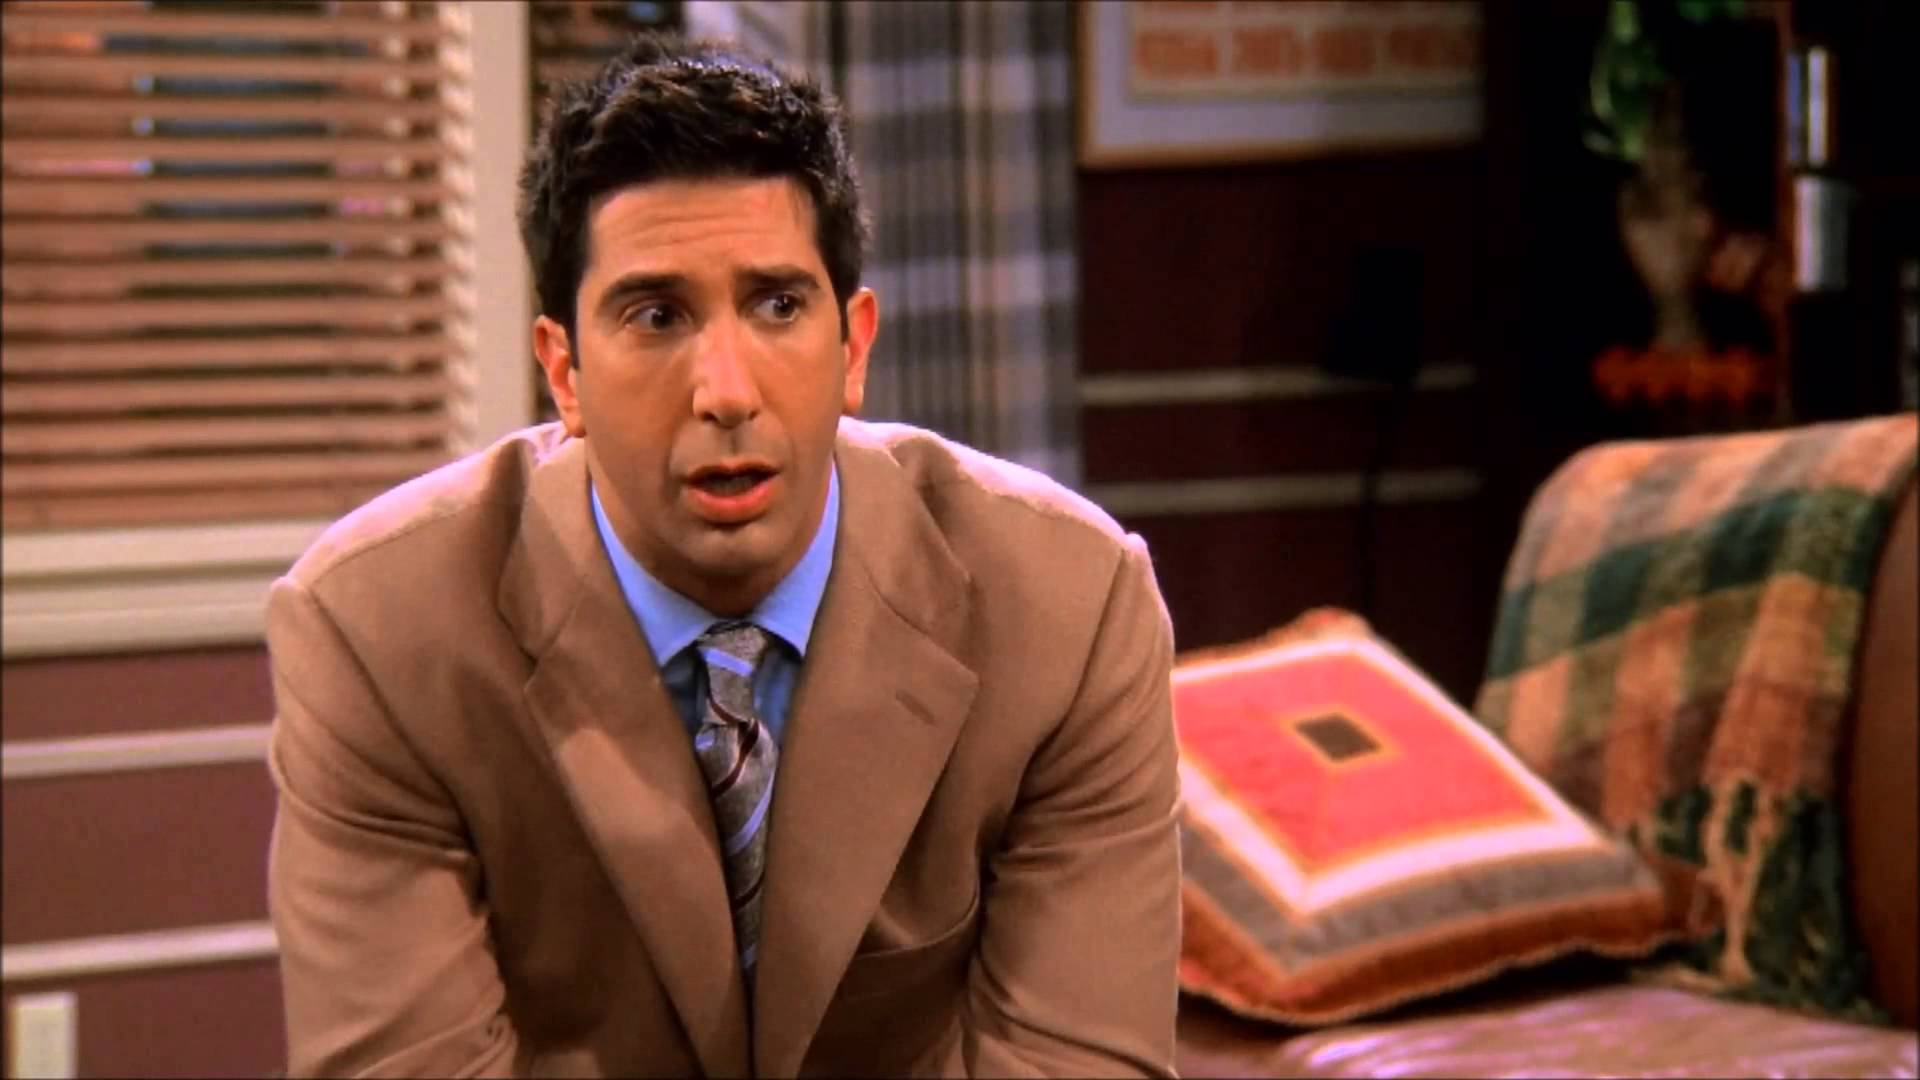 Ross Geller en una escena de la serie 'Friends' / CREATIVE COMMONS